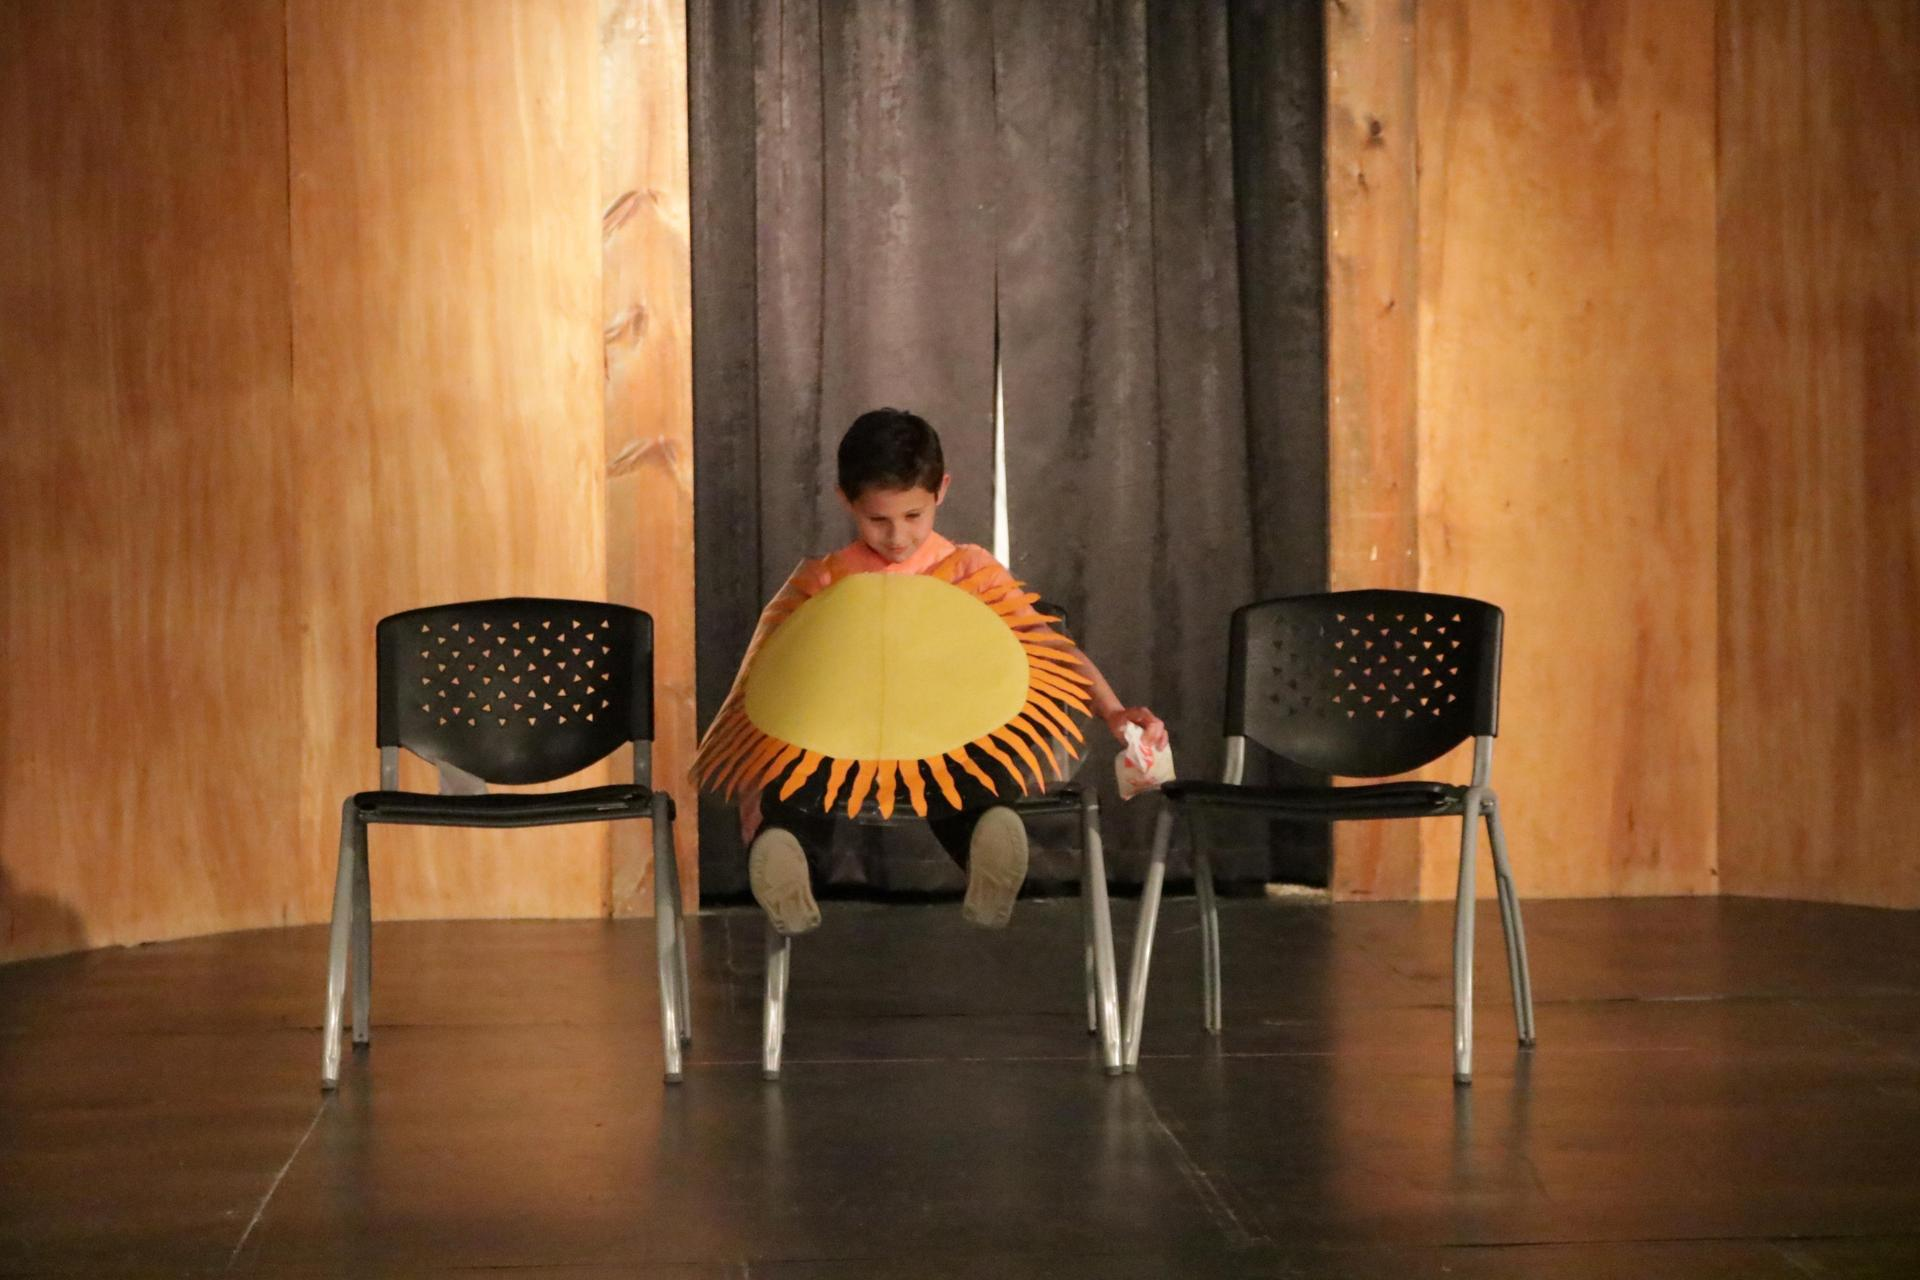 A student plays the sun in a play